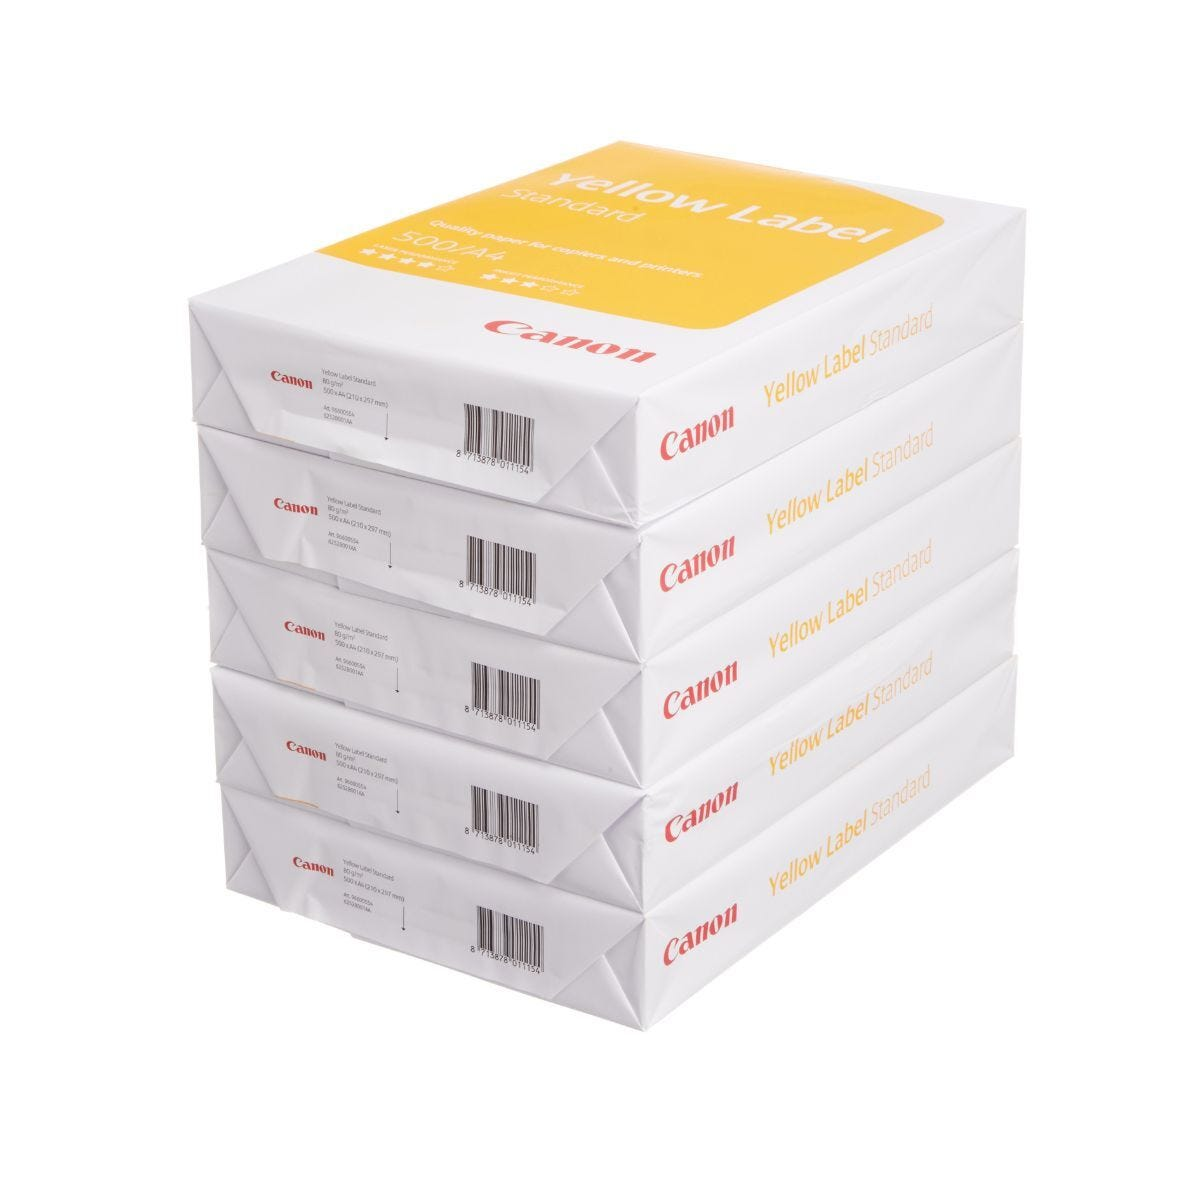 Canon Copier Paper  A4 80gsm 500 Sheets Box of 5 Reams of Paper